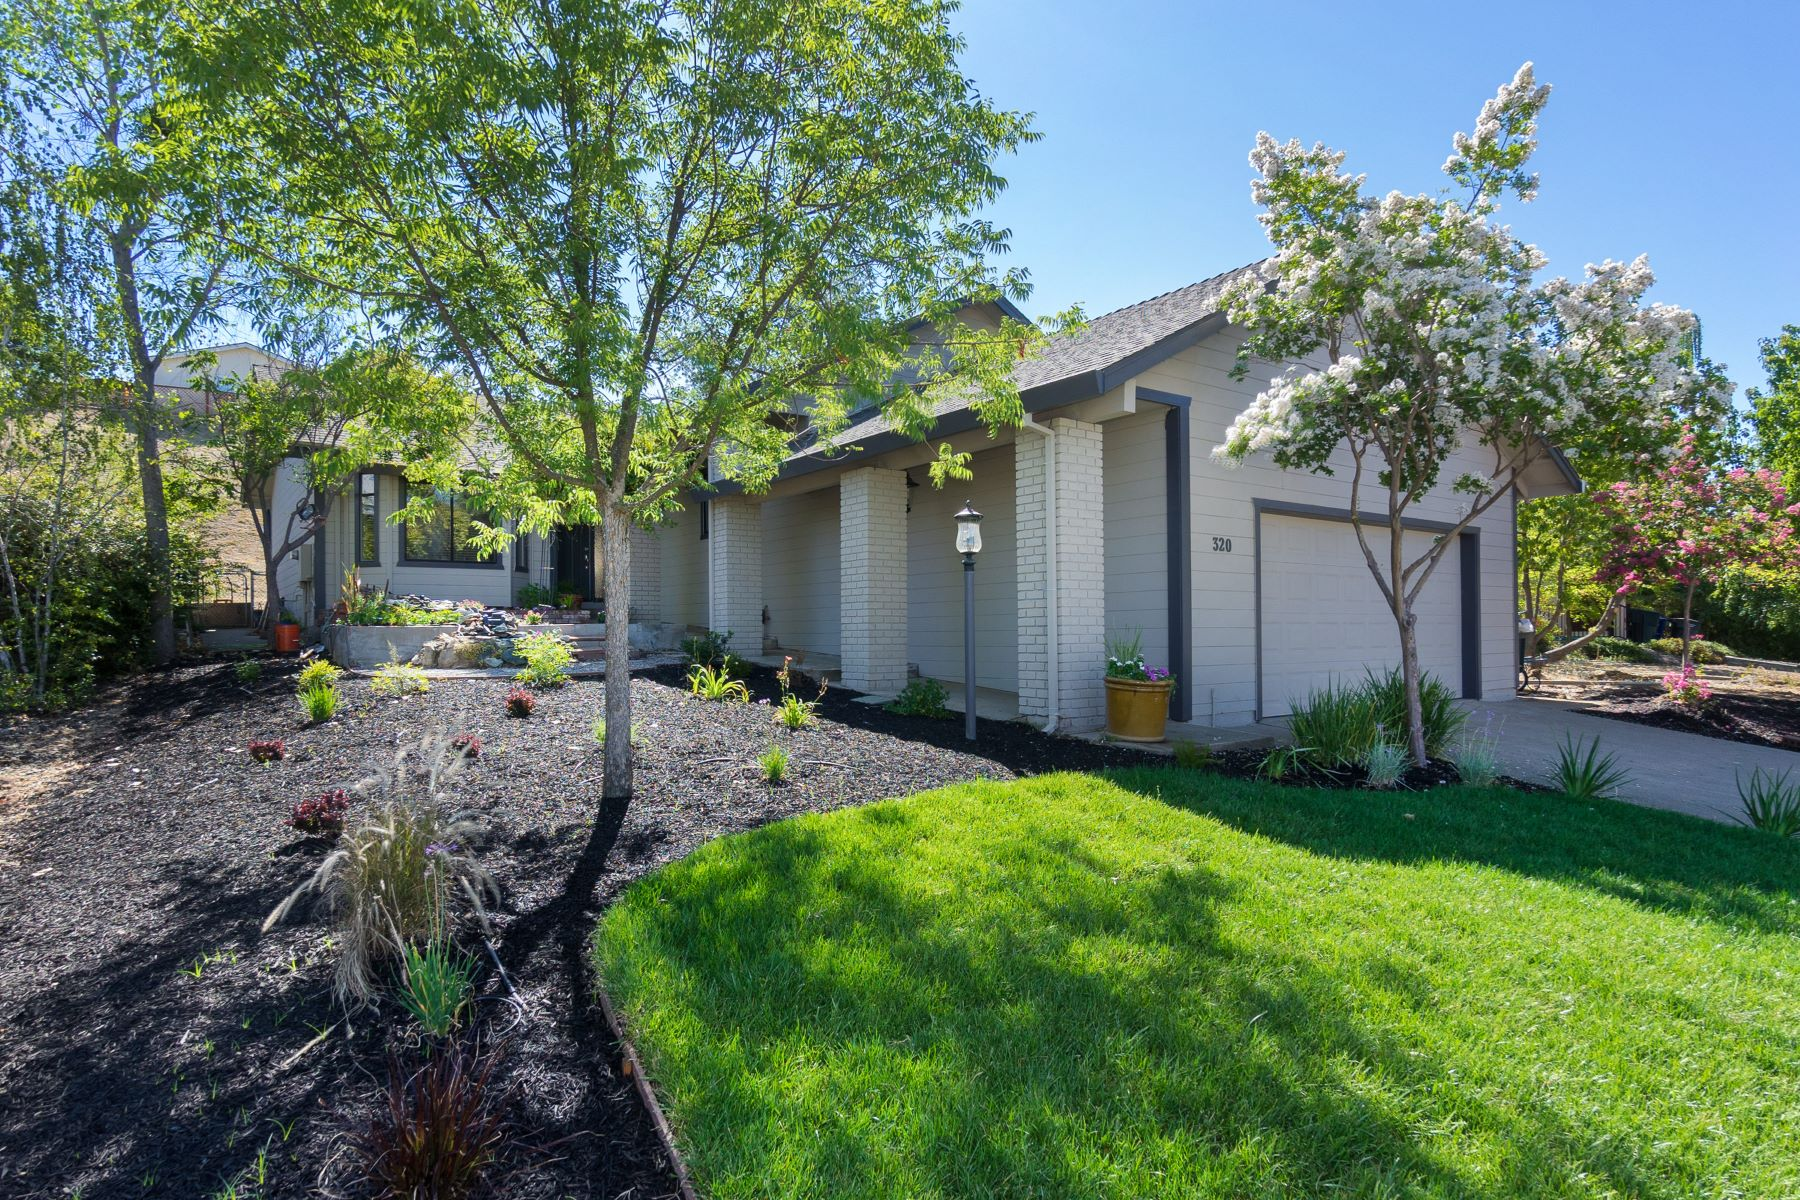 Single Family Home for Sale at Newly Renovated 1800 sq ft Masterpiece 320 Gold Strike Court Sutter Creek, California 95685 United States